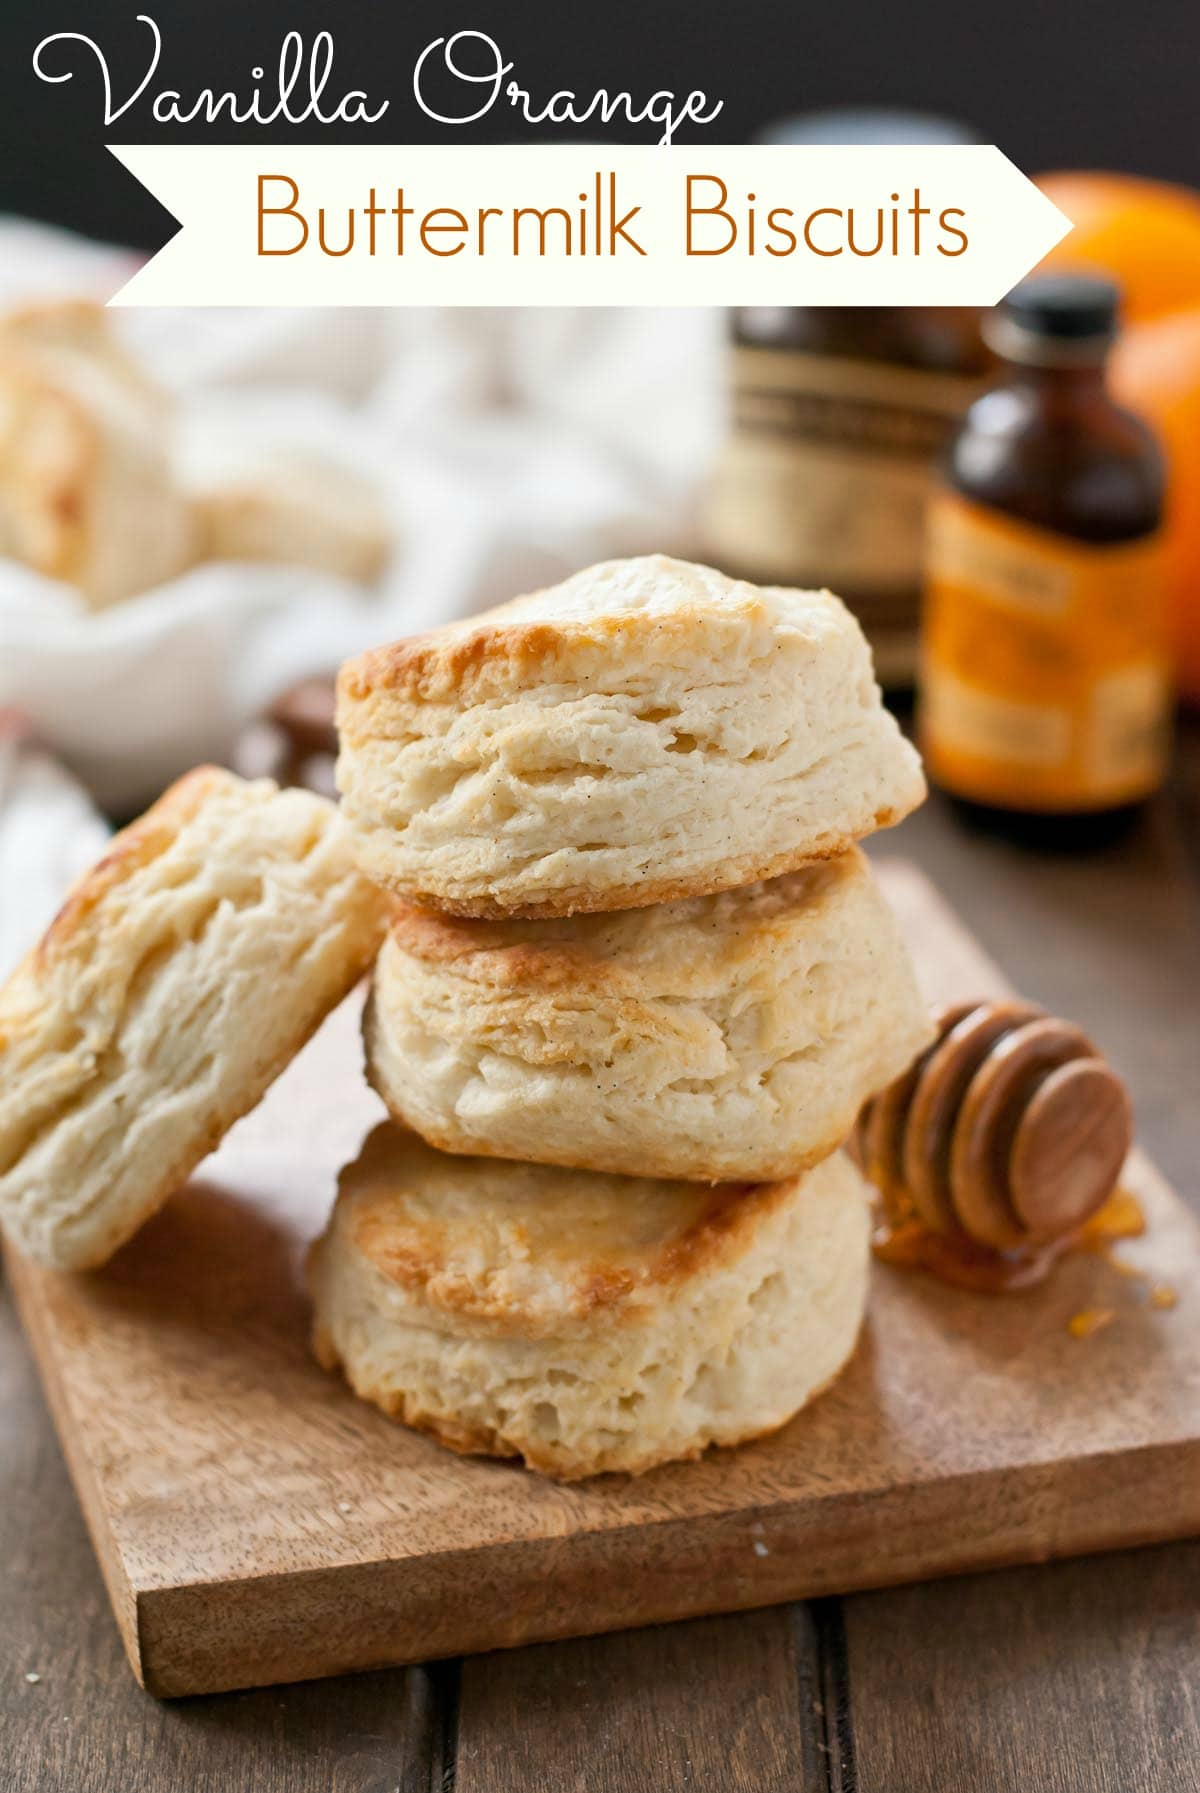 These Vanilla Orange Buttermilk Biscuits are so tender and flaky thanks to a special trick!